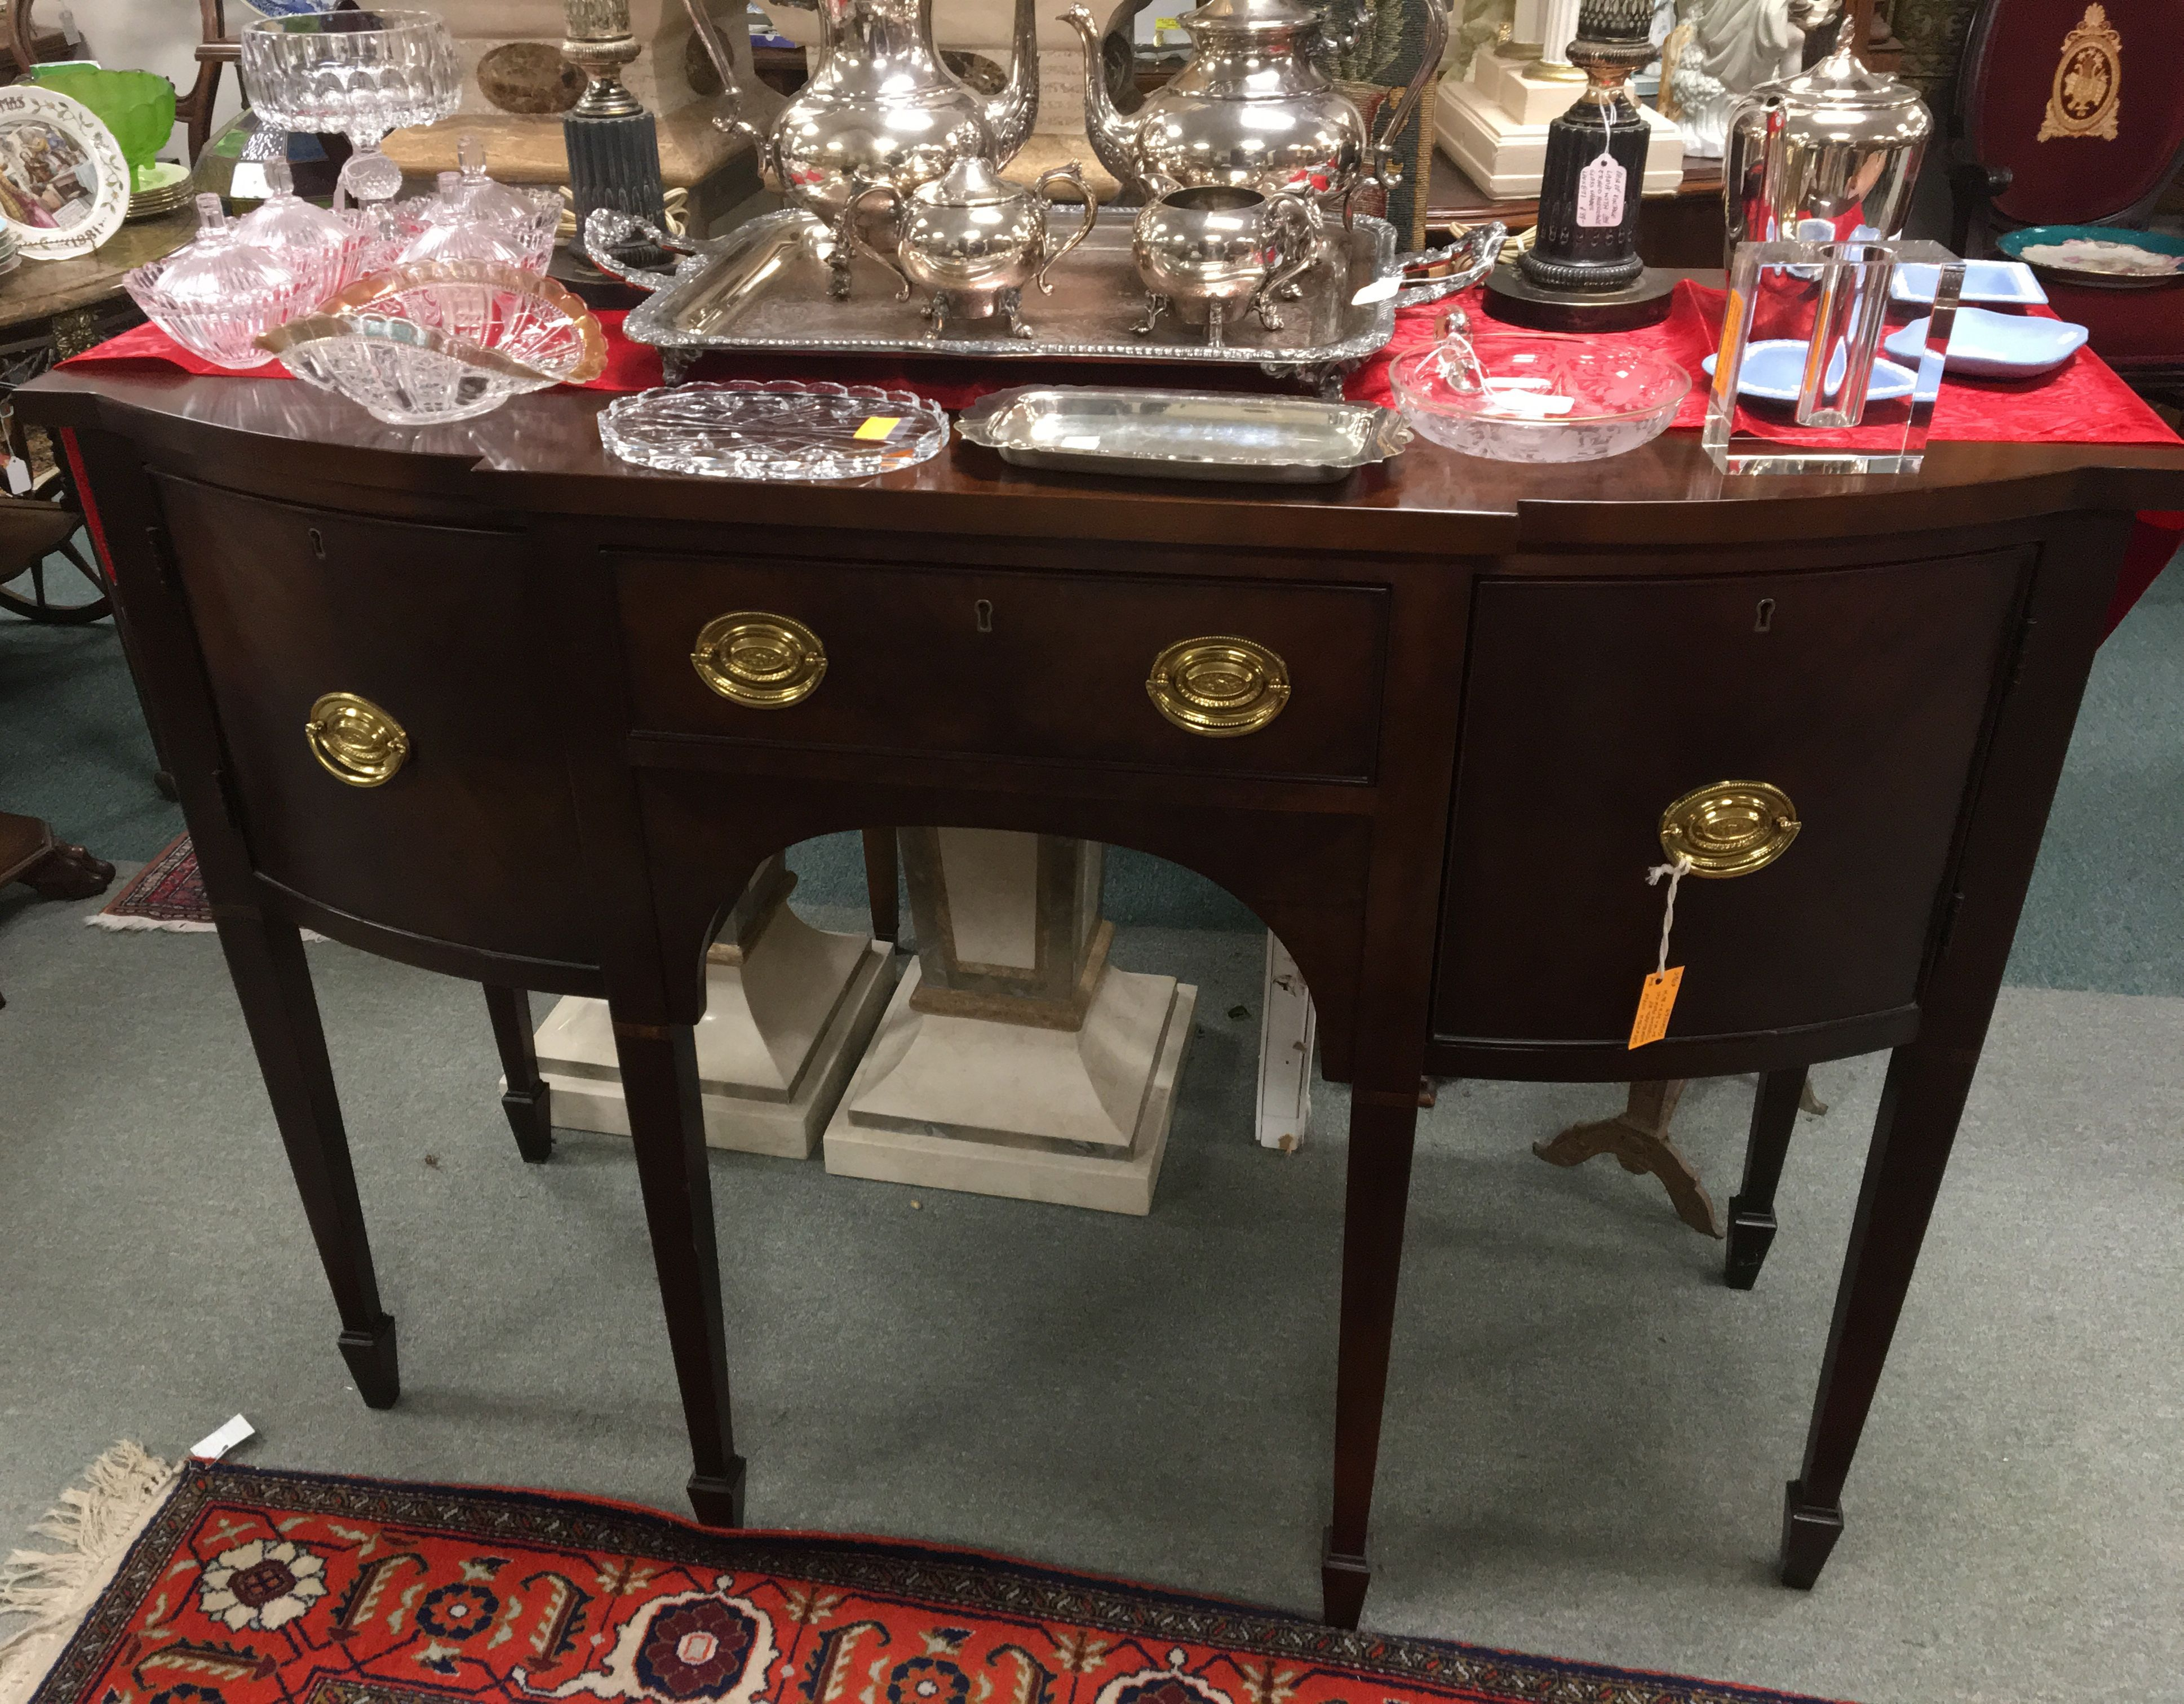 Colombo Mobili ~ Colombo mobili marble top night stands antique and vintage